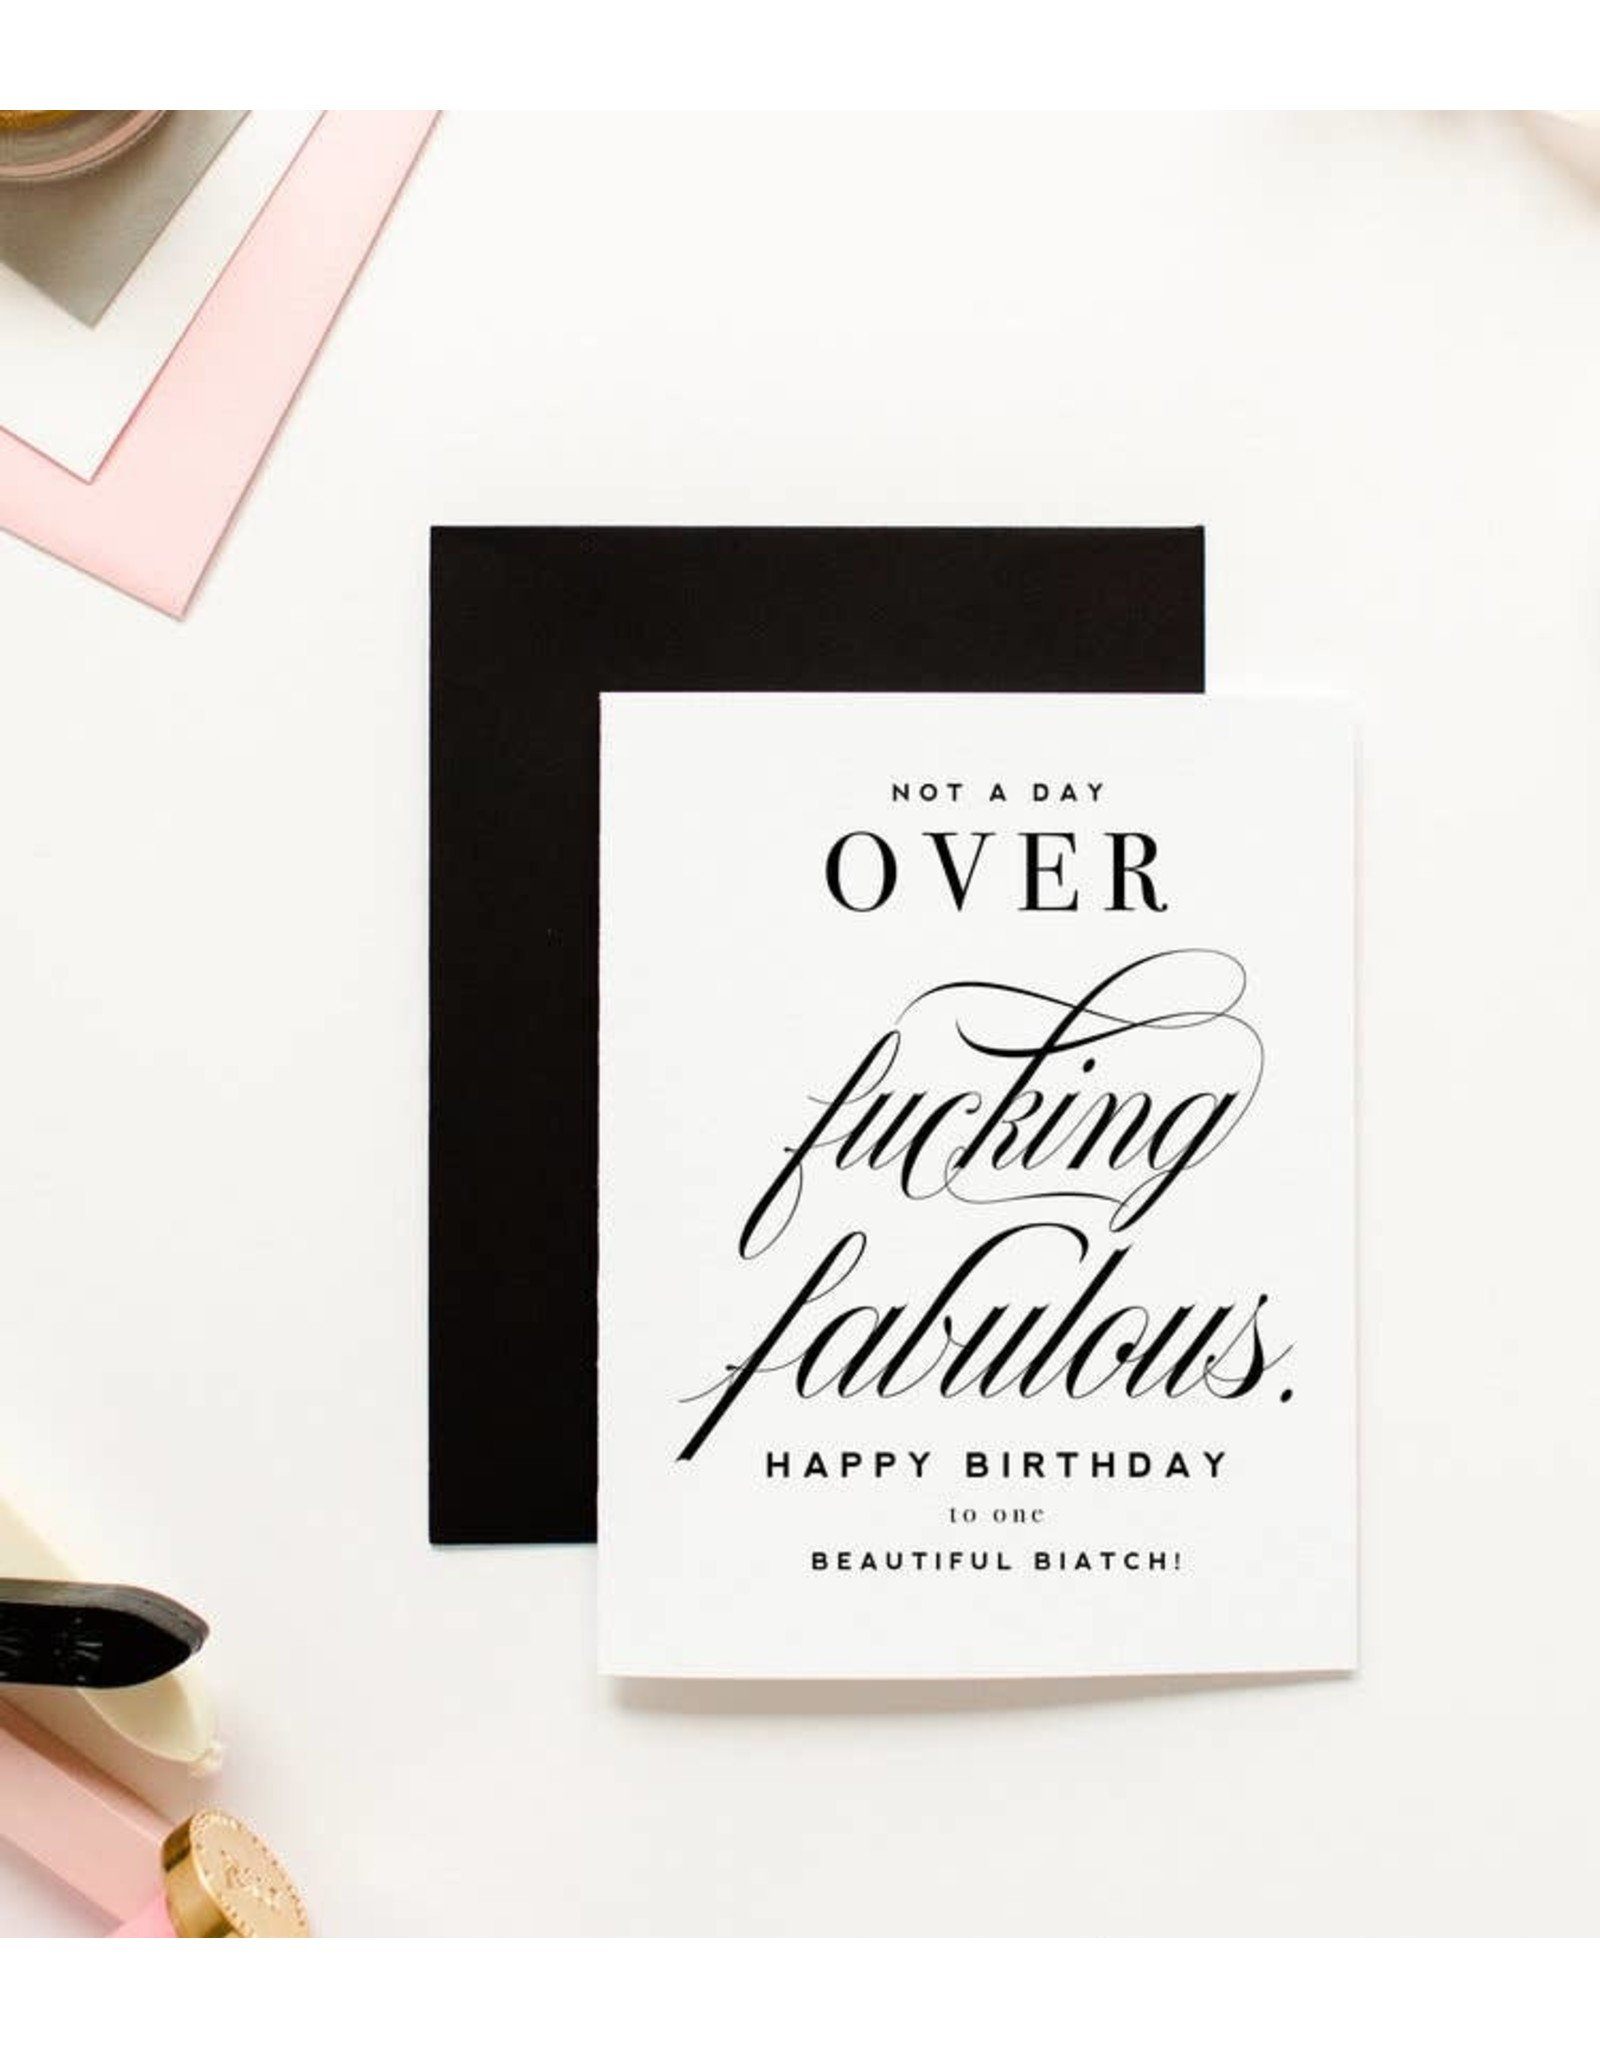 KITTY MEOW BOUTIQUE GREETING CARD -